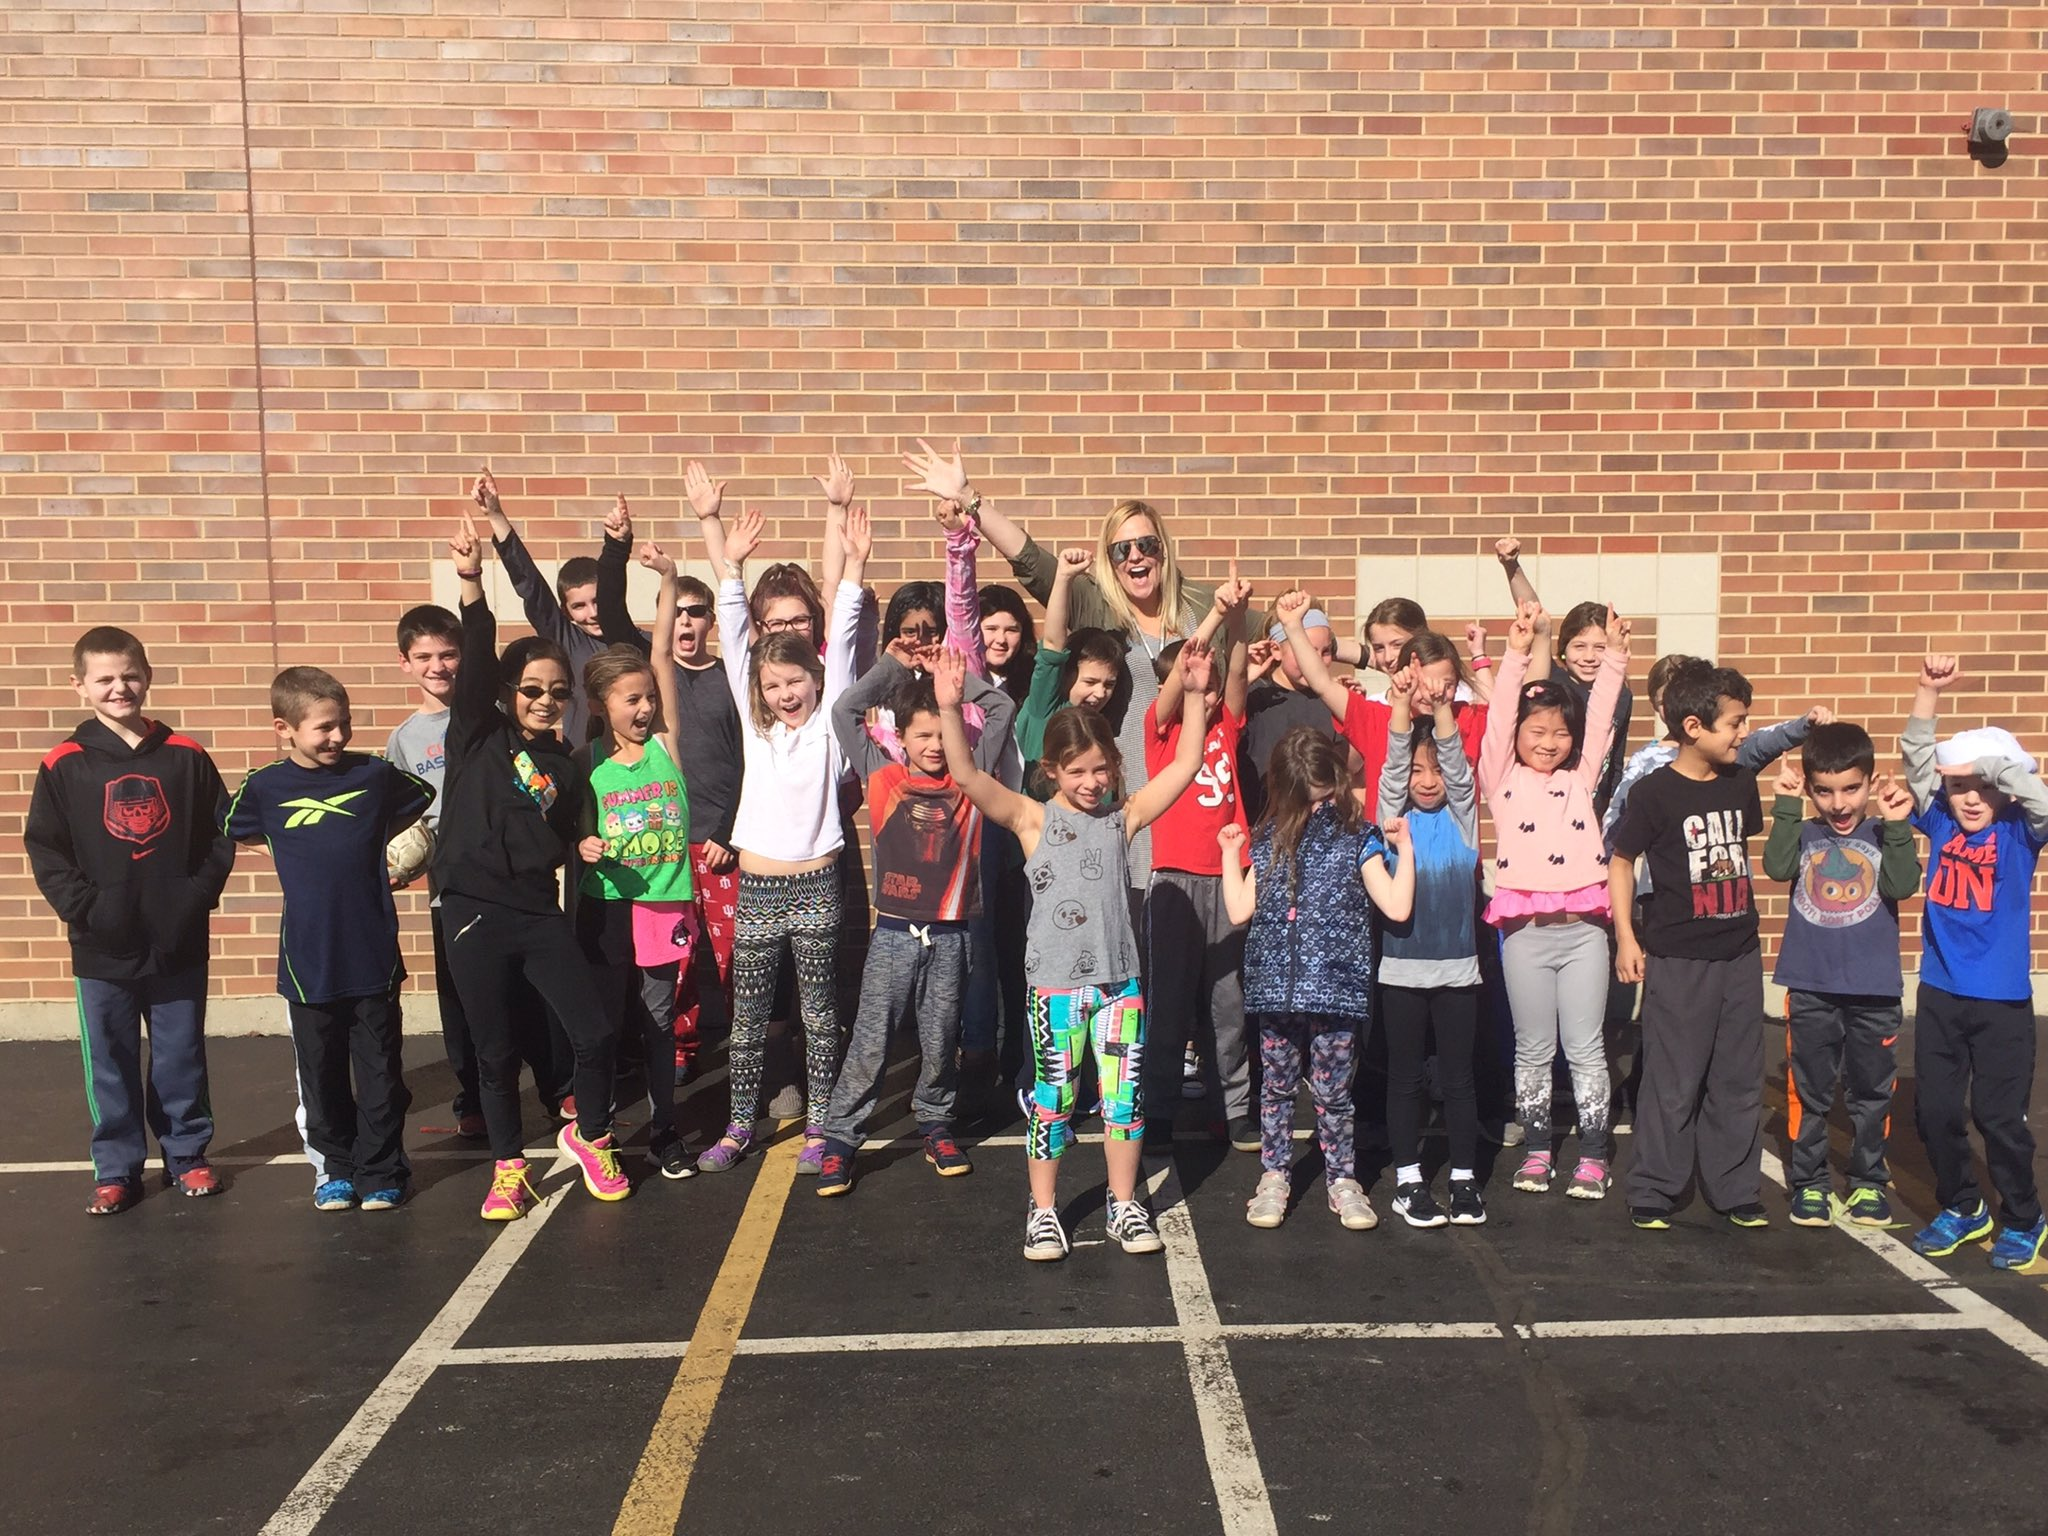 Congrats to these Parker200 winners- they earned an extra recess on this beautiful day! #sp109 https://t.co/XcnFltnyqS